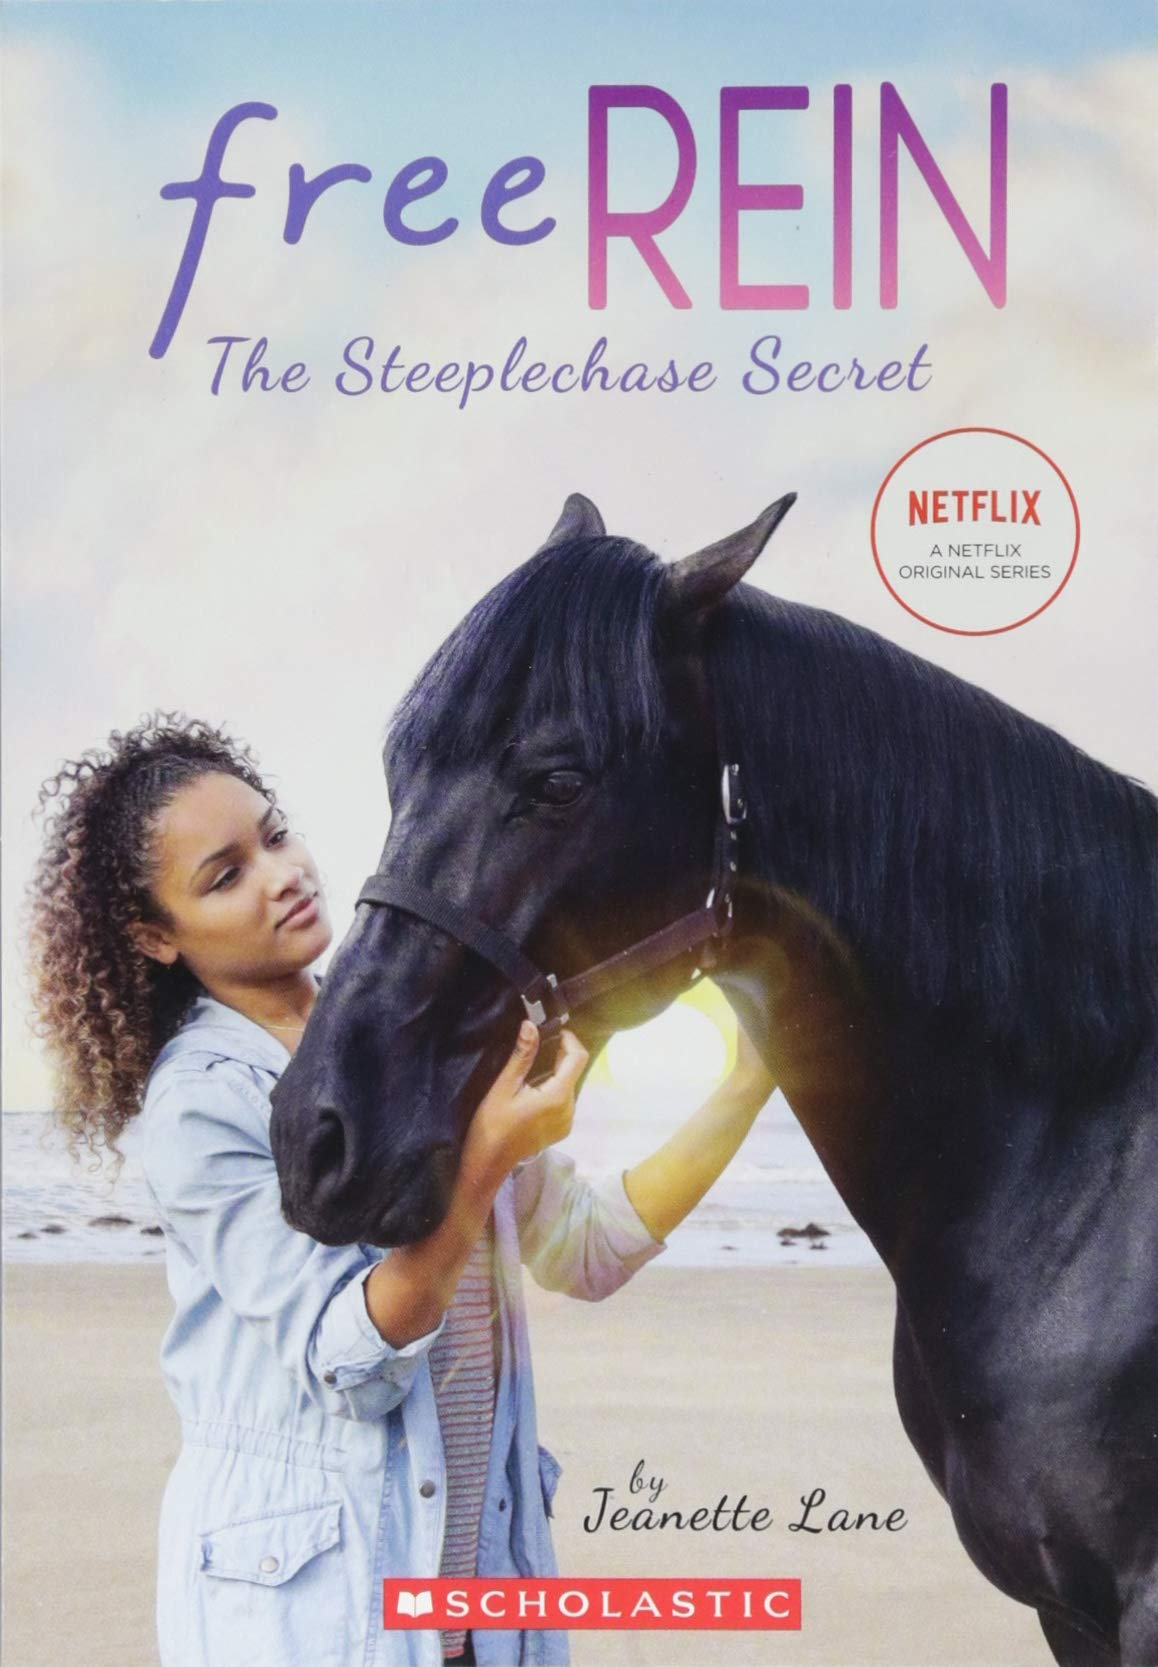 Download The Steeplechase Secret (Free Rein #1) pdf